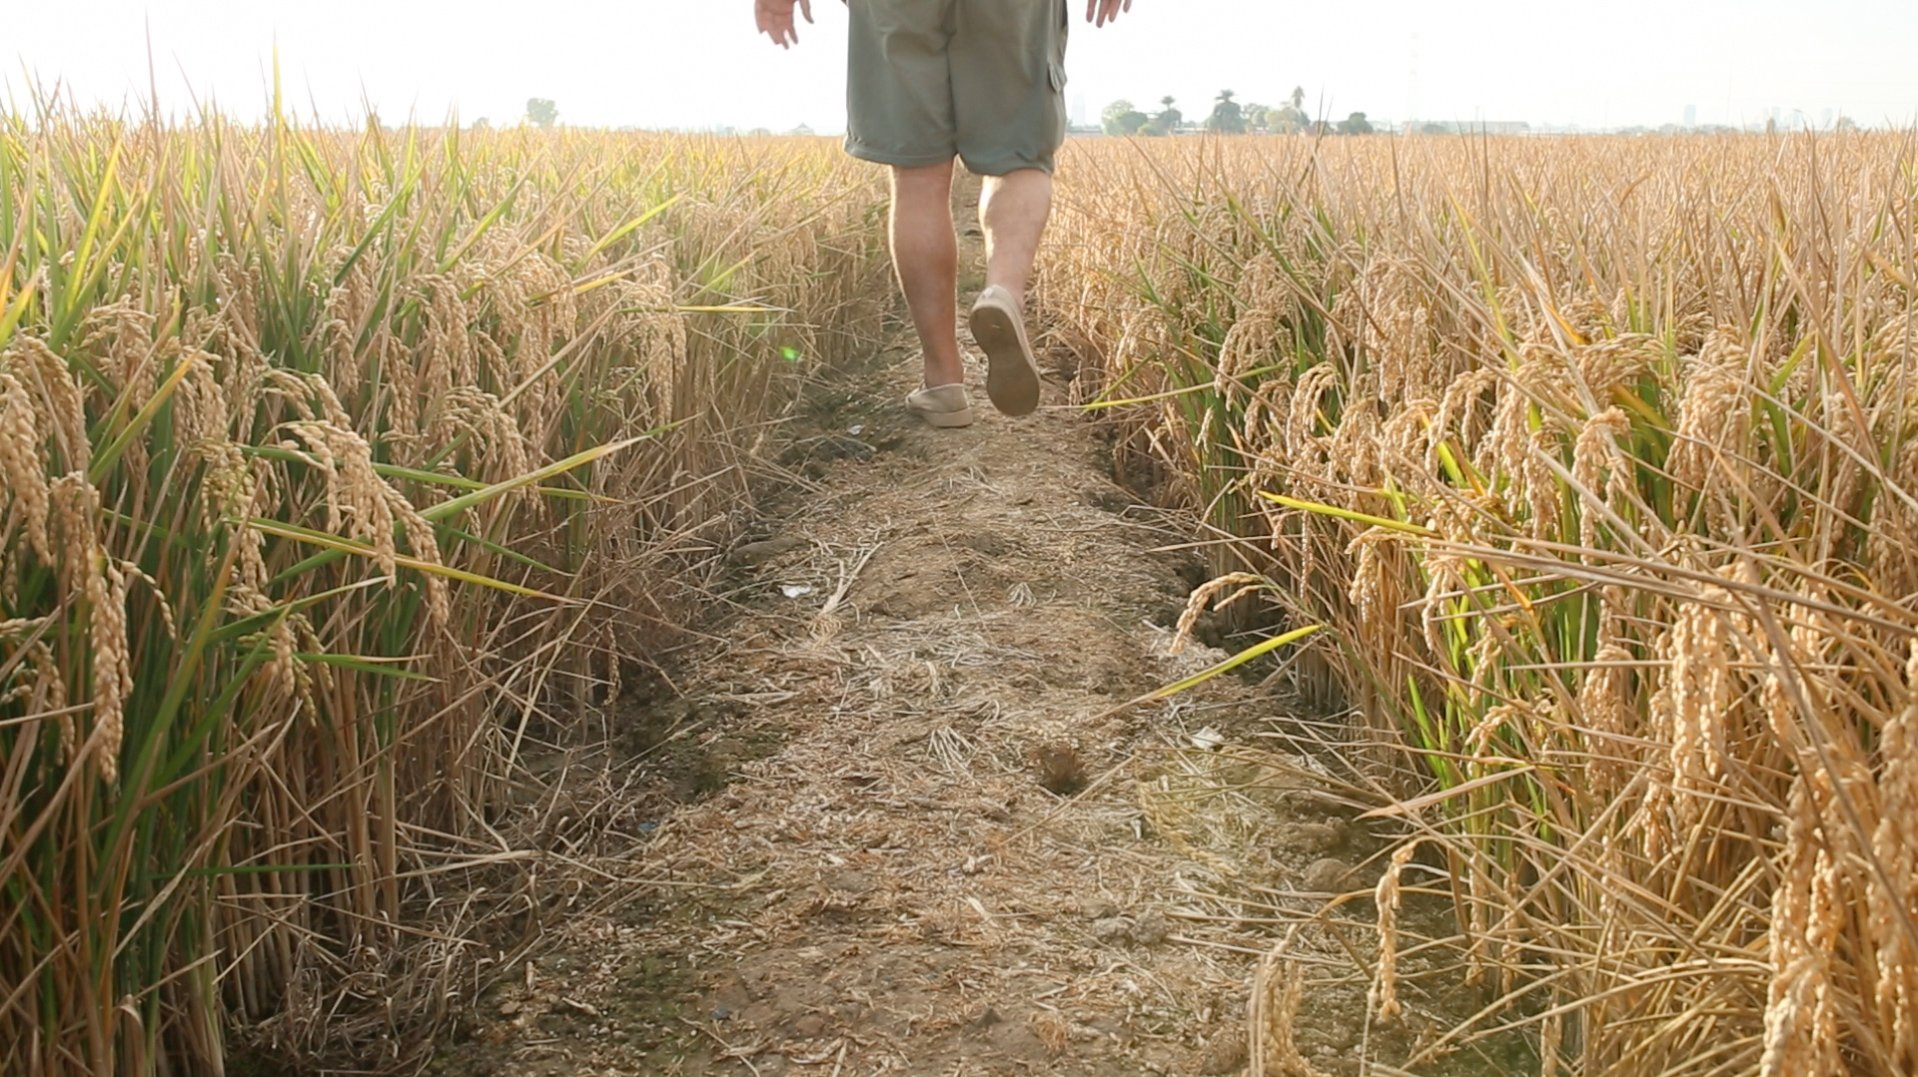 Man walking through rice fields